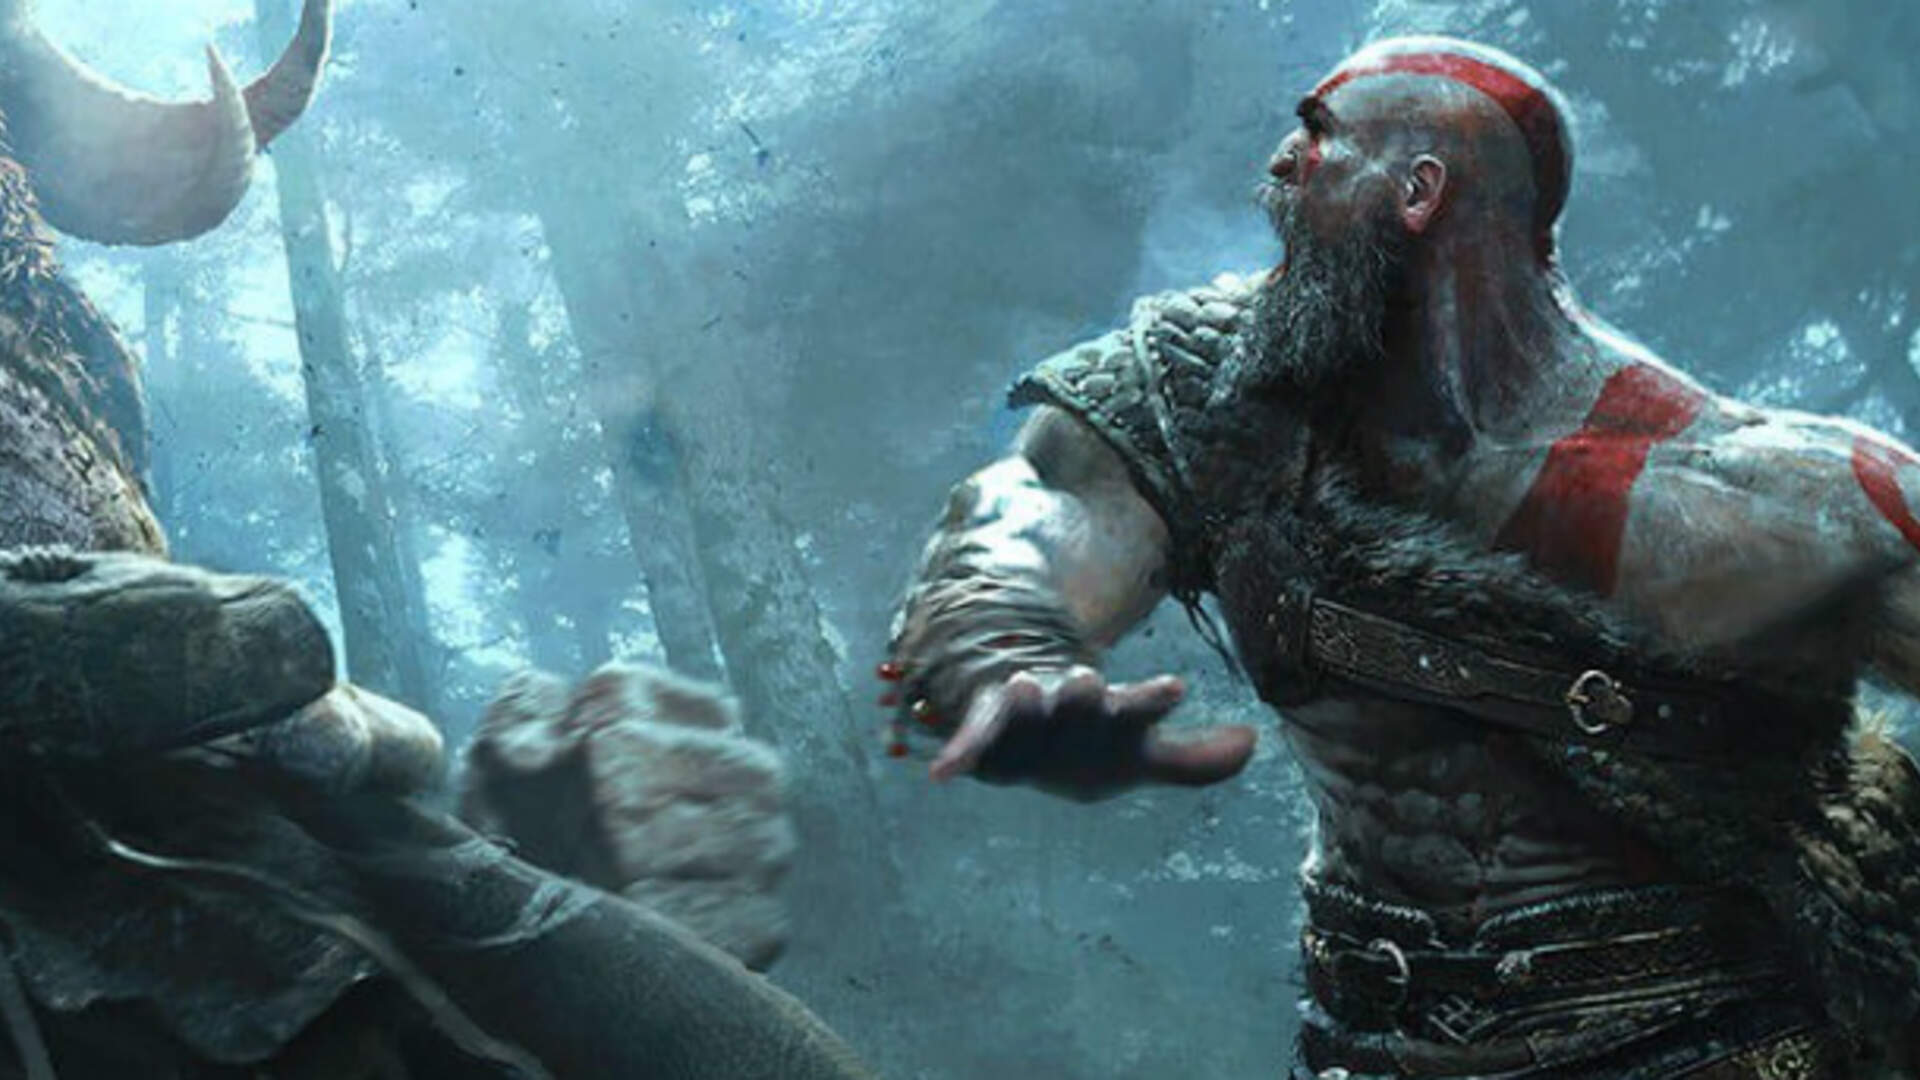 God Of War Is Stunning In 4k And Hdr But Lacks A Locked Frame